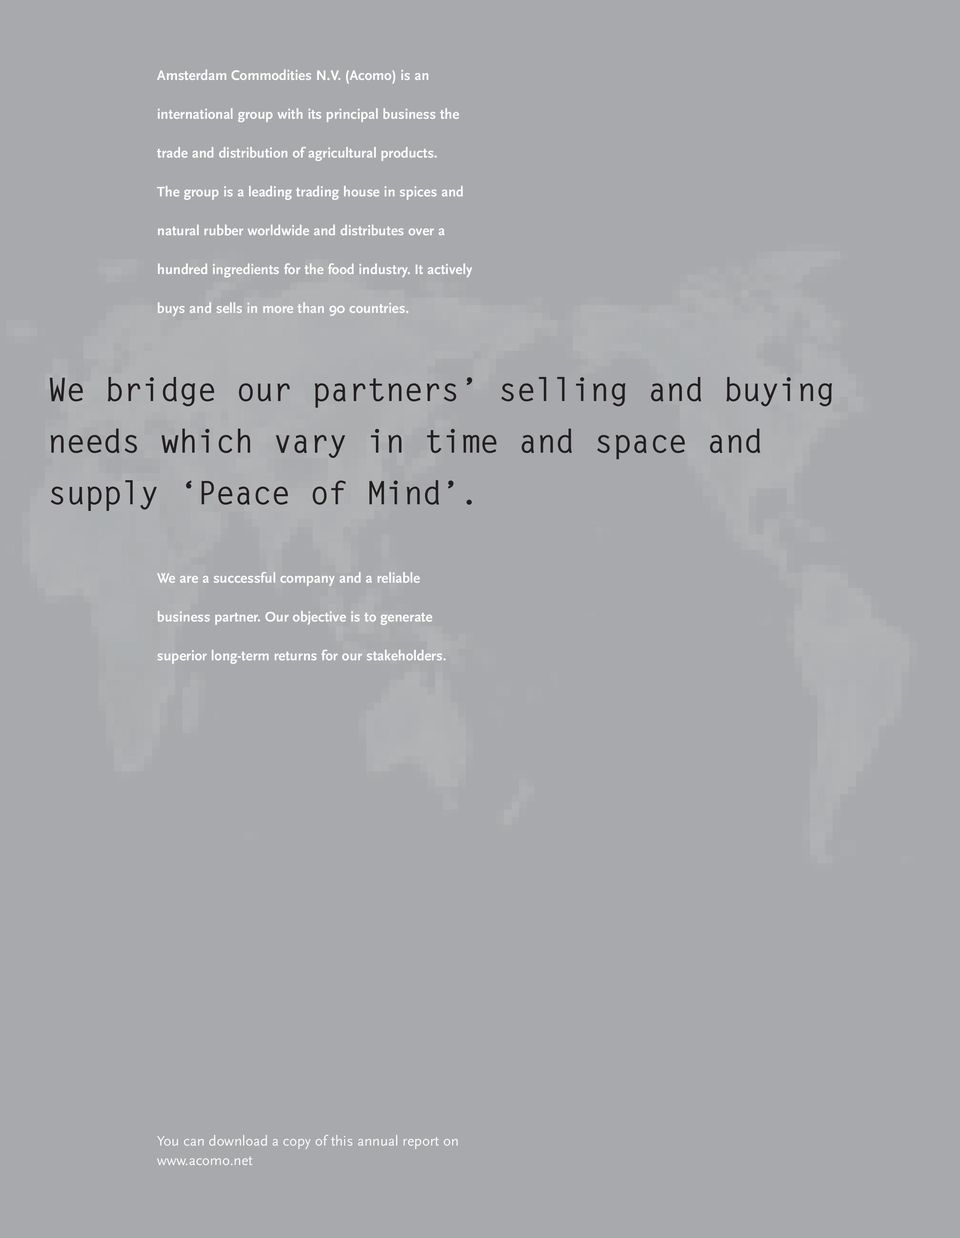 It actively buys and sells in more than 90 countries. We bridge our partners selling and buying needs which vary in time and space and supply Peace of Mind.